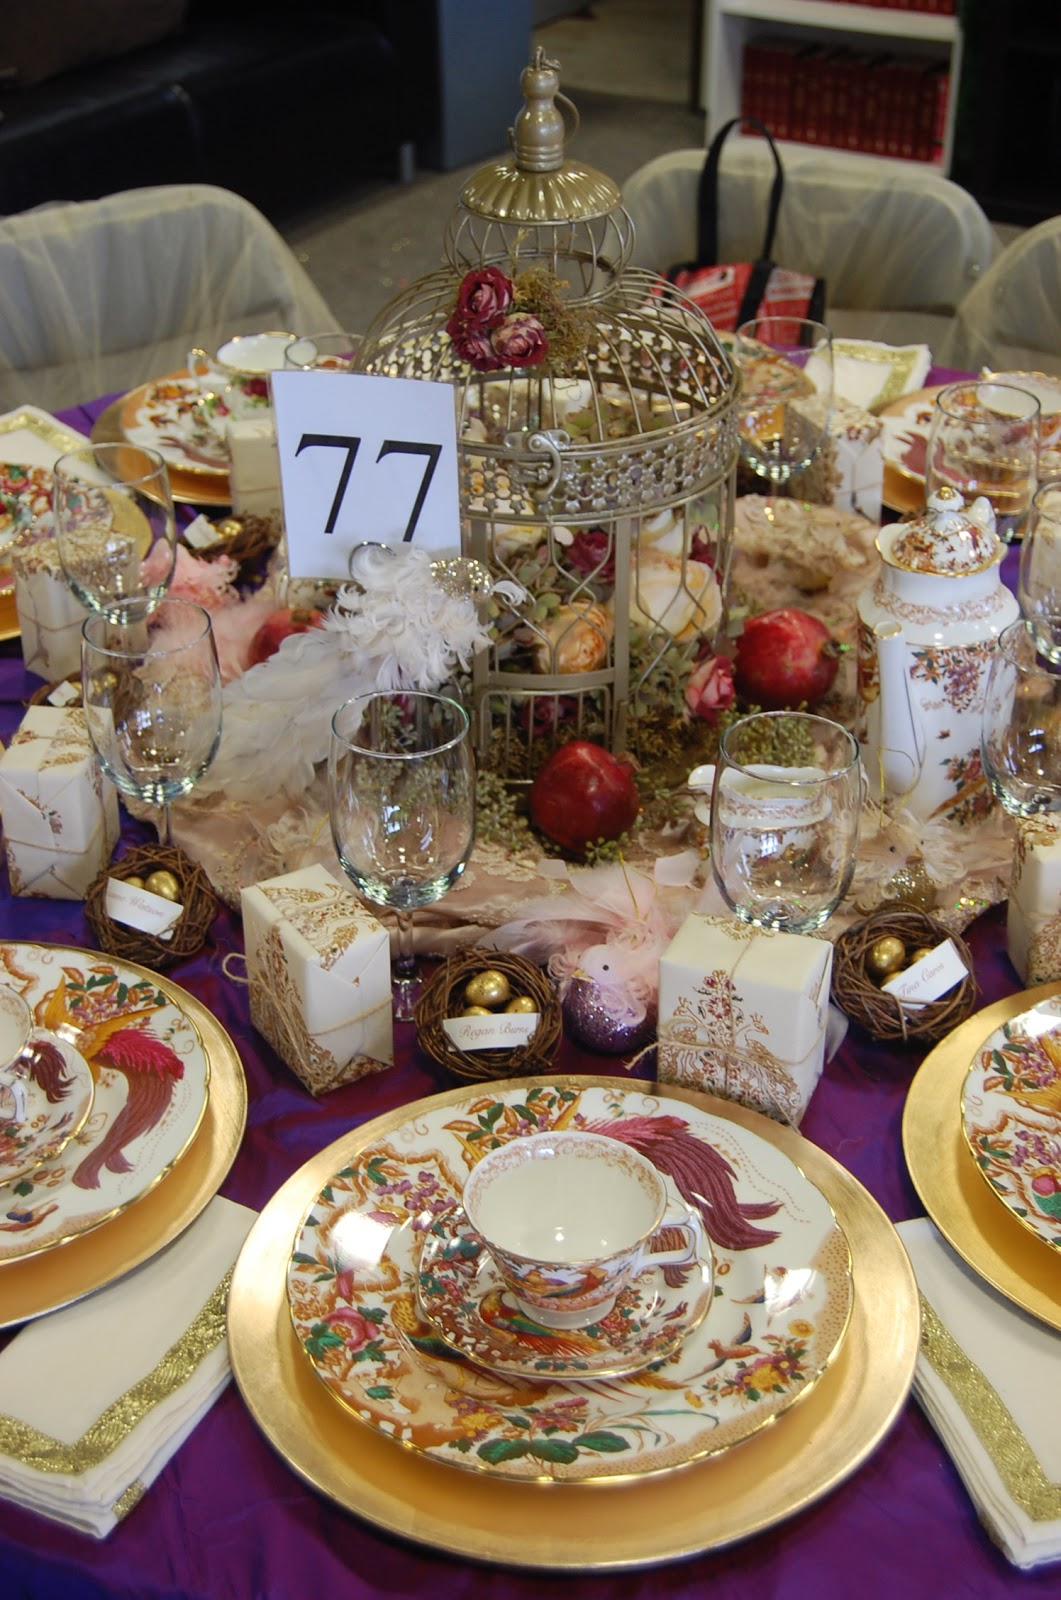 One fabulous mom christmas tea party setting the perfect Christmas party table settings